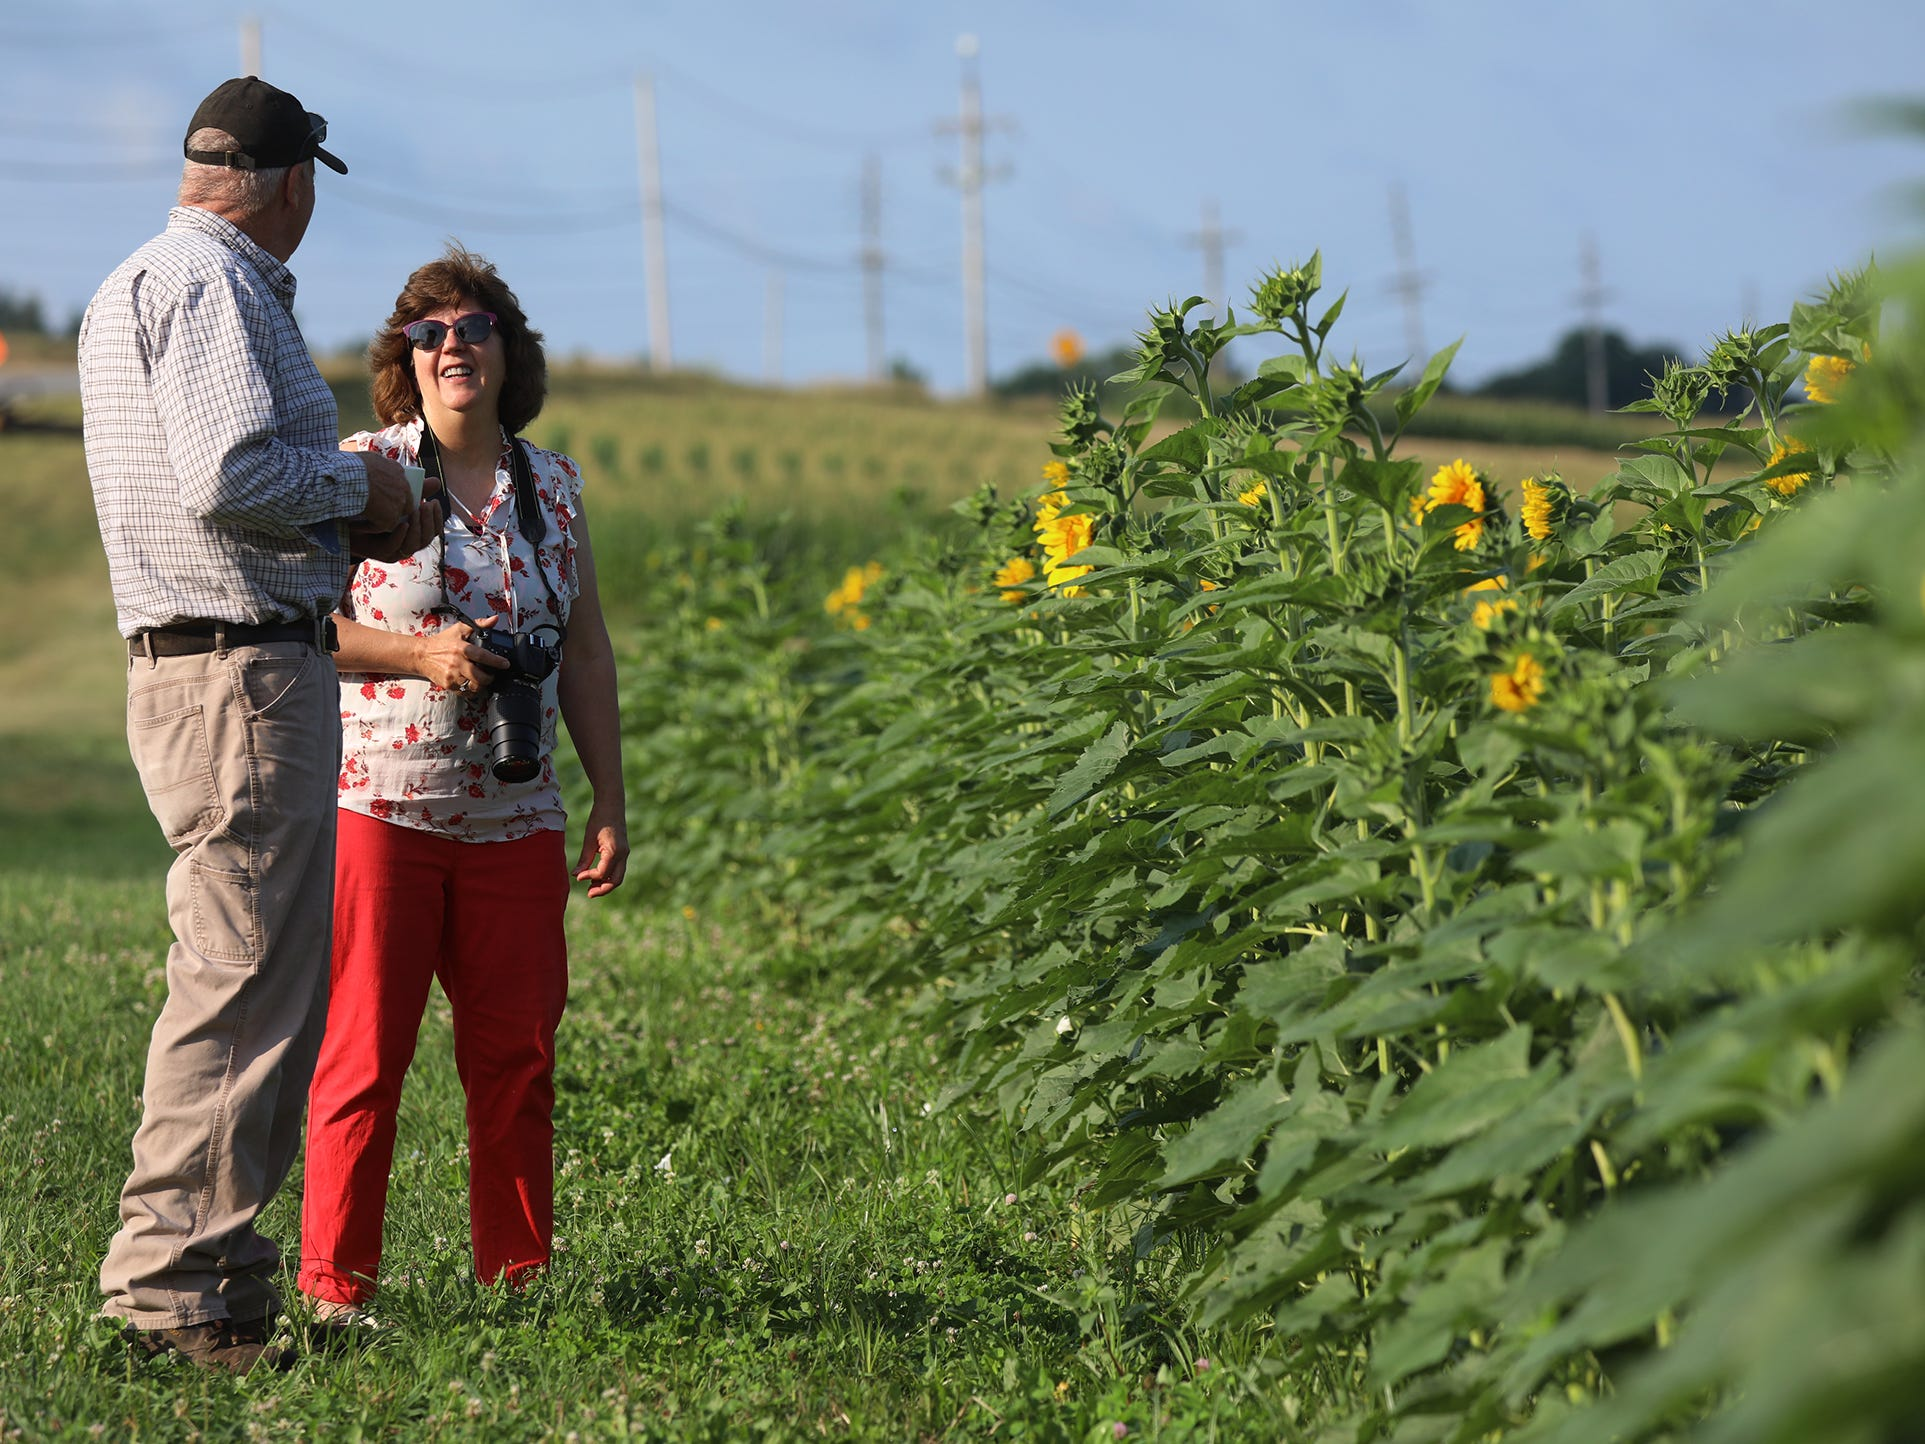 Mark Greene, owner of Hopkins Family Farm in Pittsford, talks with Claire Talbot of Henrietta.  They became friendly when she started photographing his barns and sunflowers years ago.  Every year she gives him a photo taken at his farm.